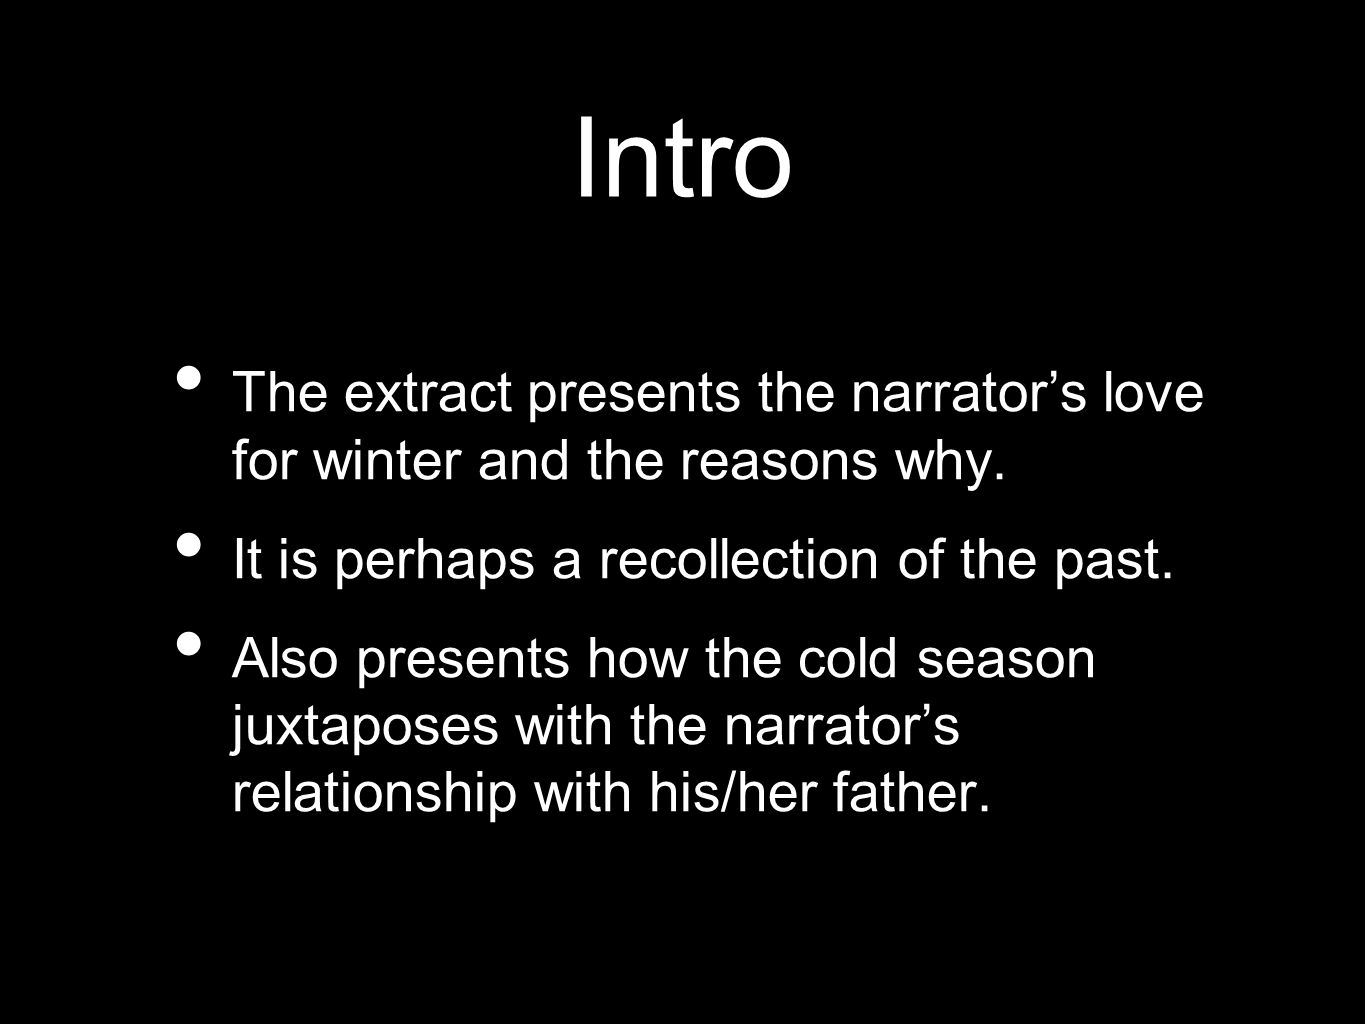 Intro The extract presents the narrator's love for winter and the reasons why.